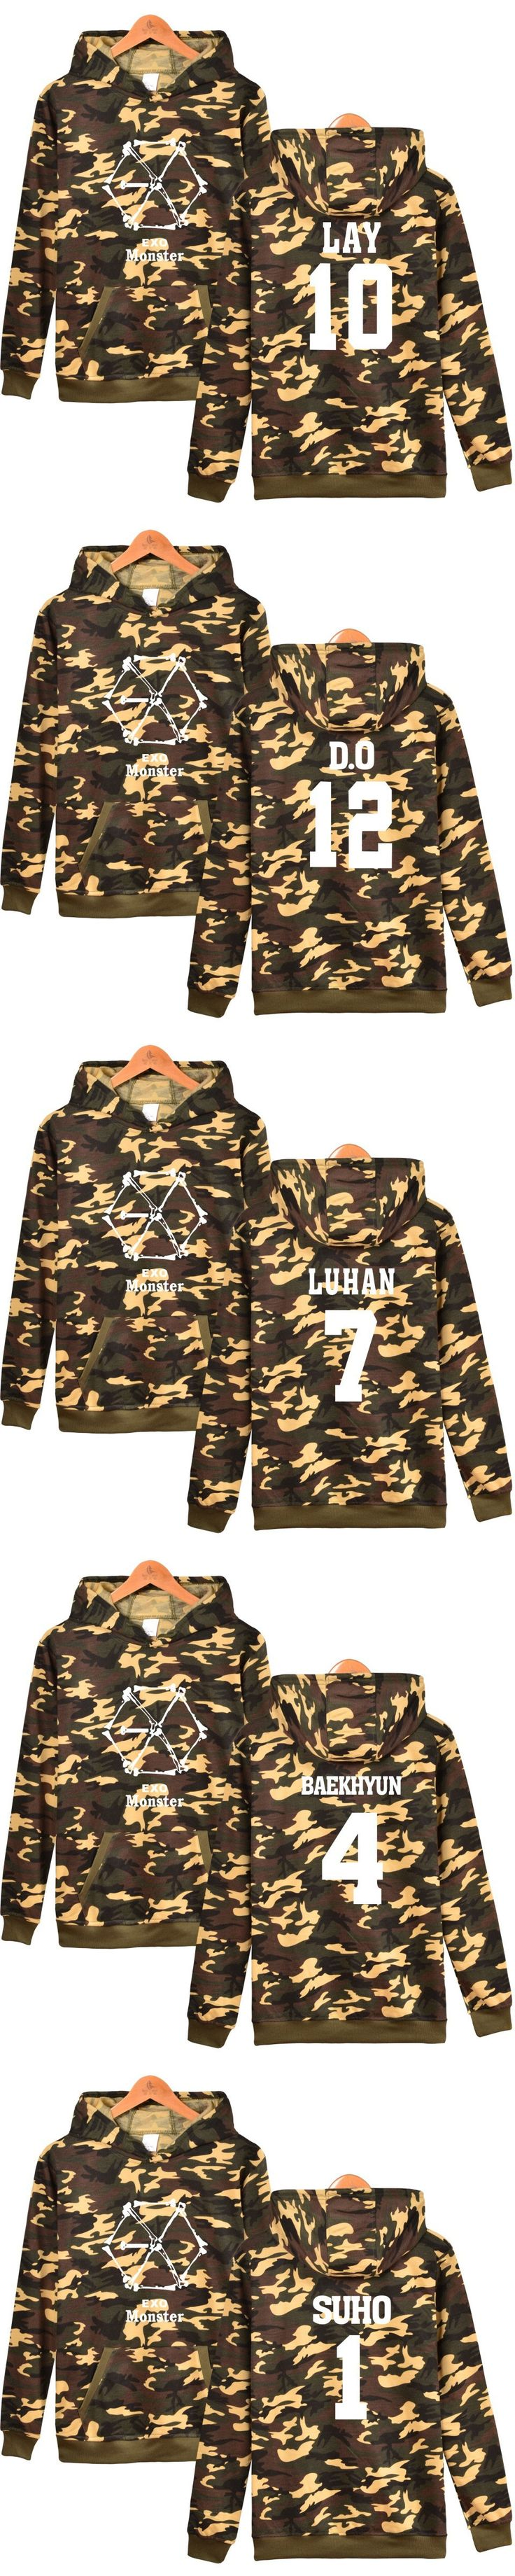 BATIGOL EXO KPOP MONSTER Men/Women Hoodies Sweatshirt With Cap Fashion KPOP Clothes EXO All Members Plus Size 4XL